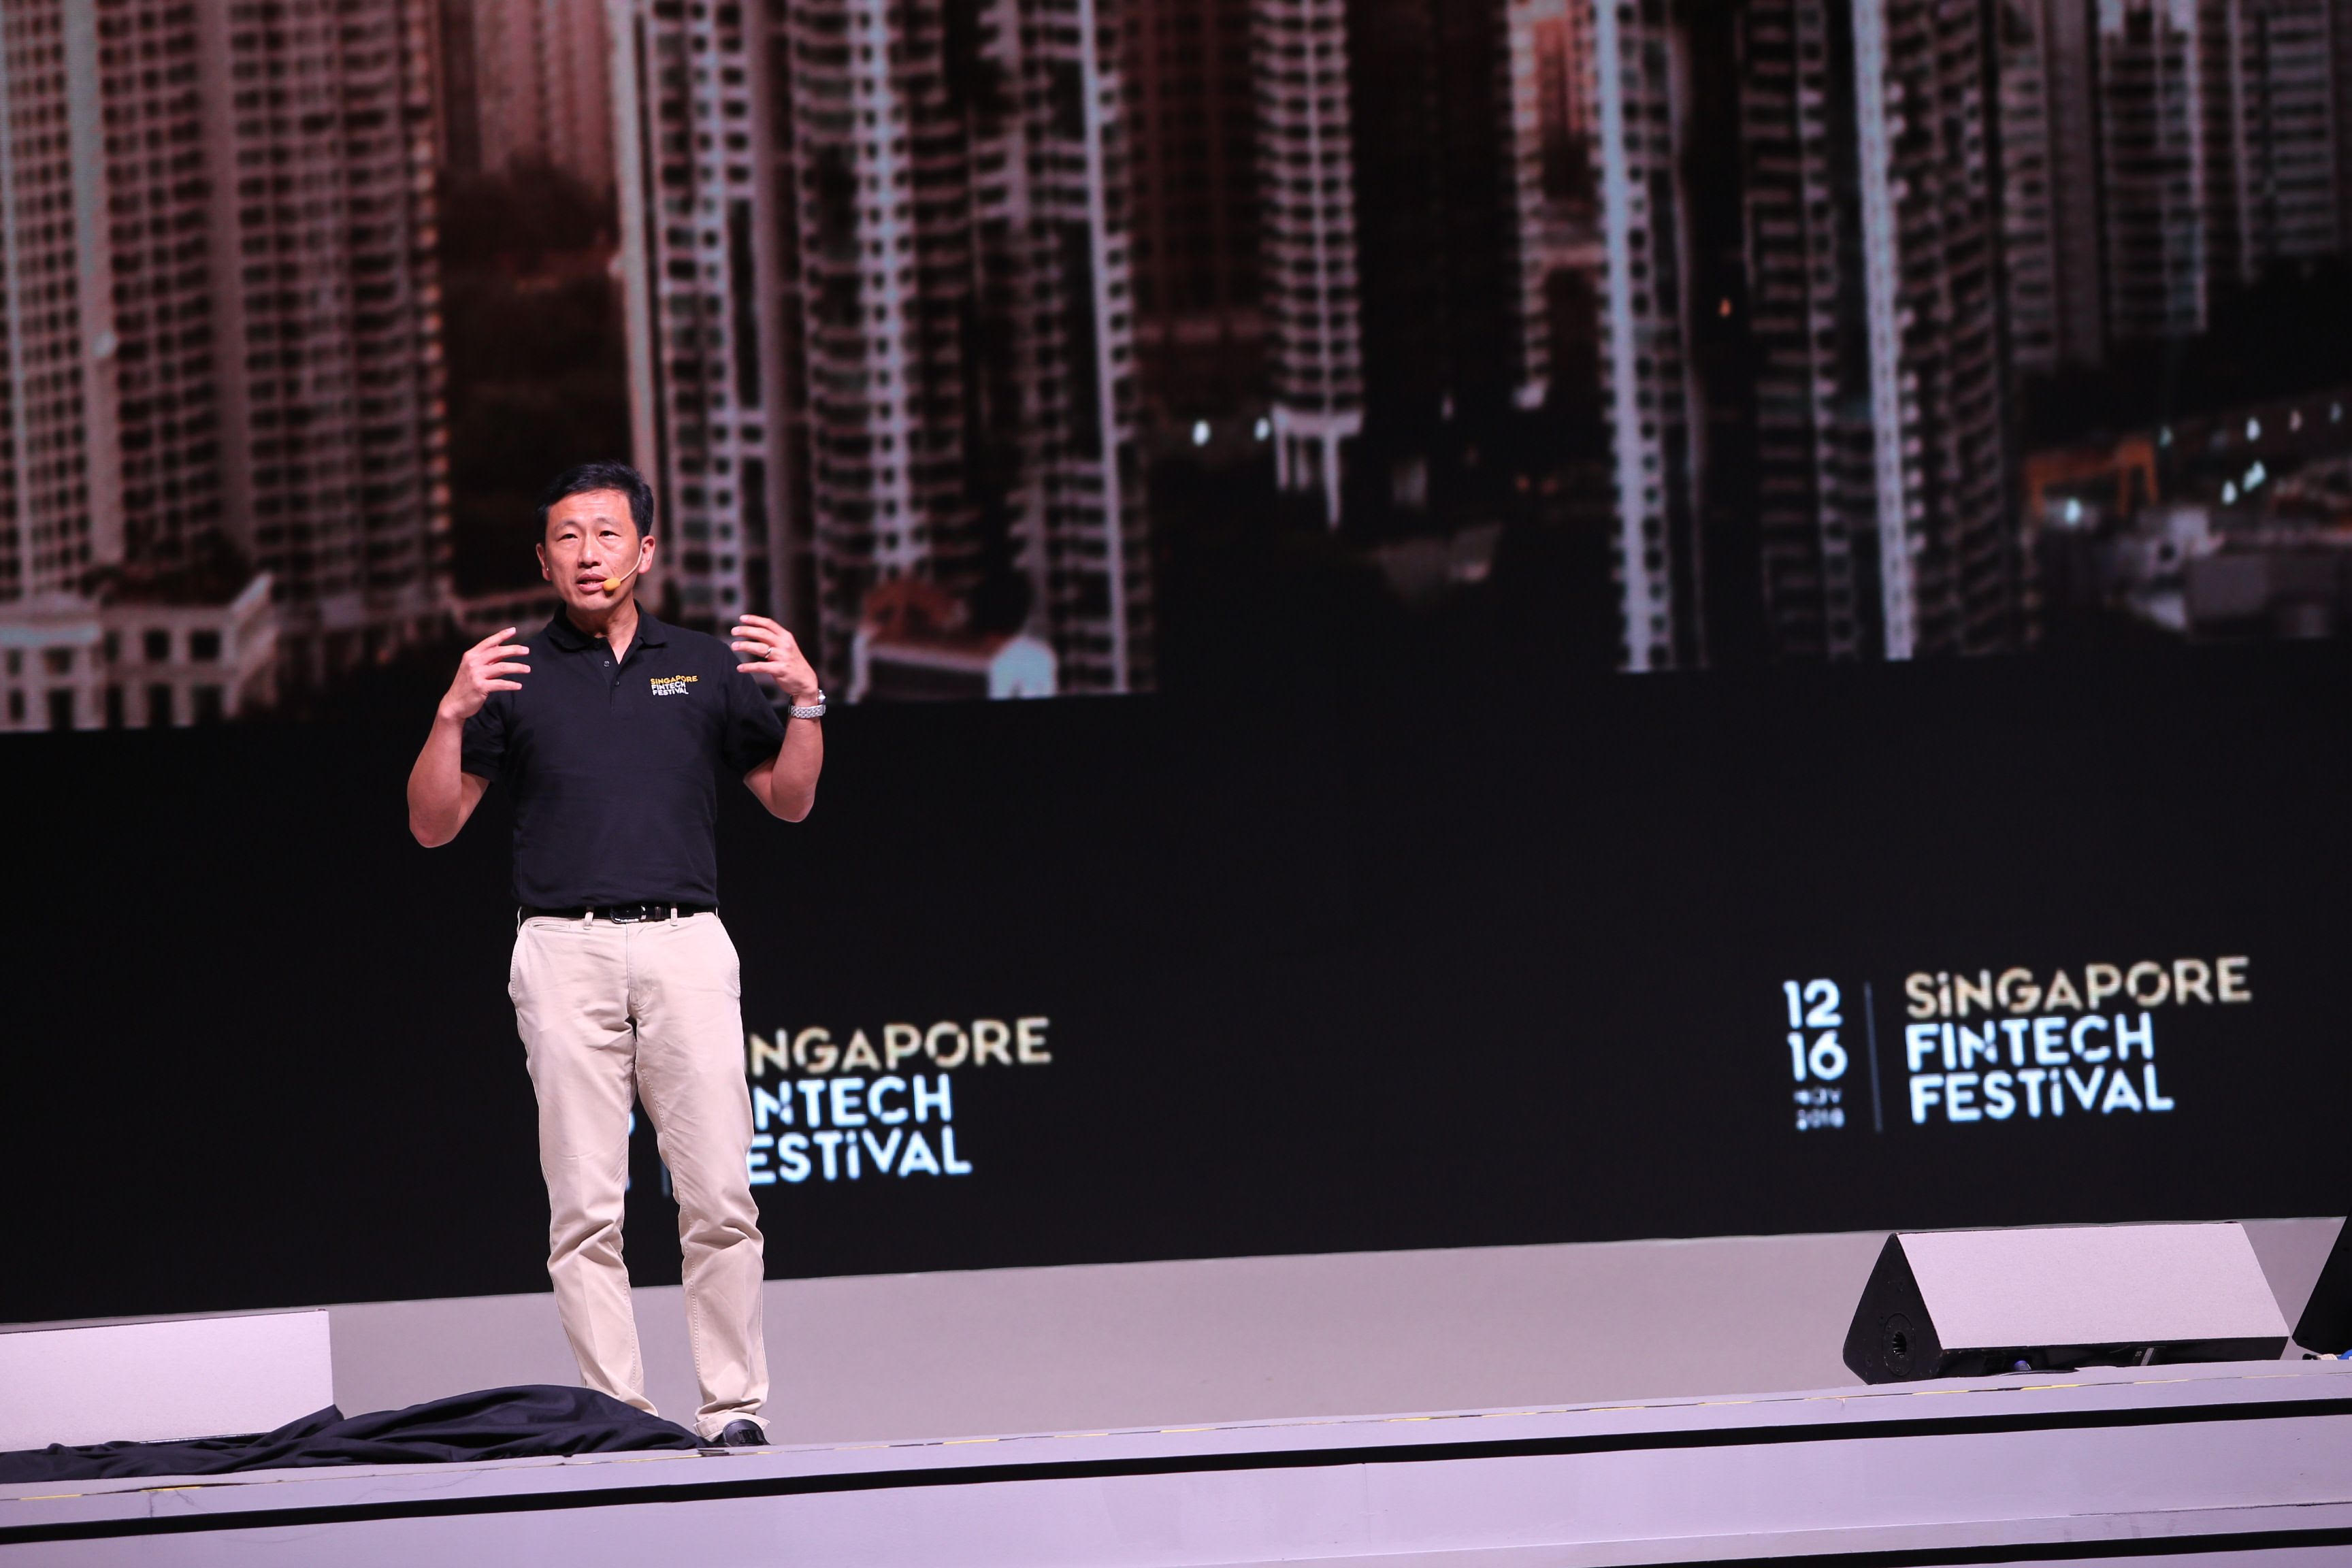 Ong Ye Kung, Education Minister and MAS board member speaking at the Singapore Fintech Festival. Photo courtesy: Singapore Fintech Festival